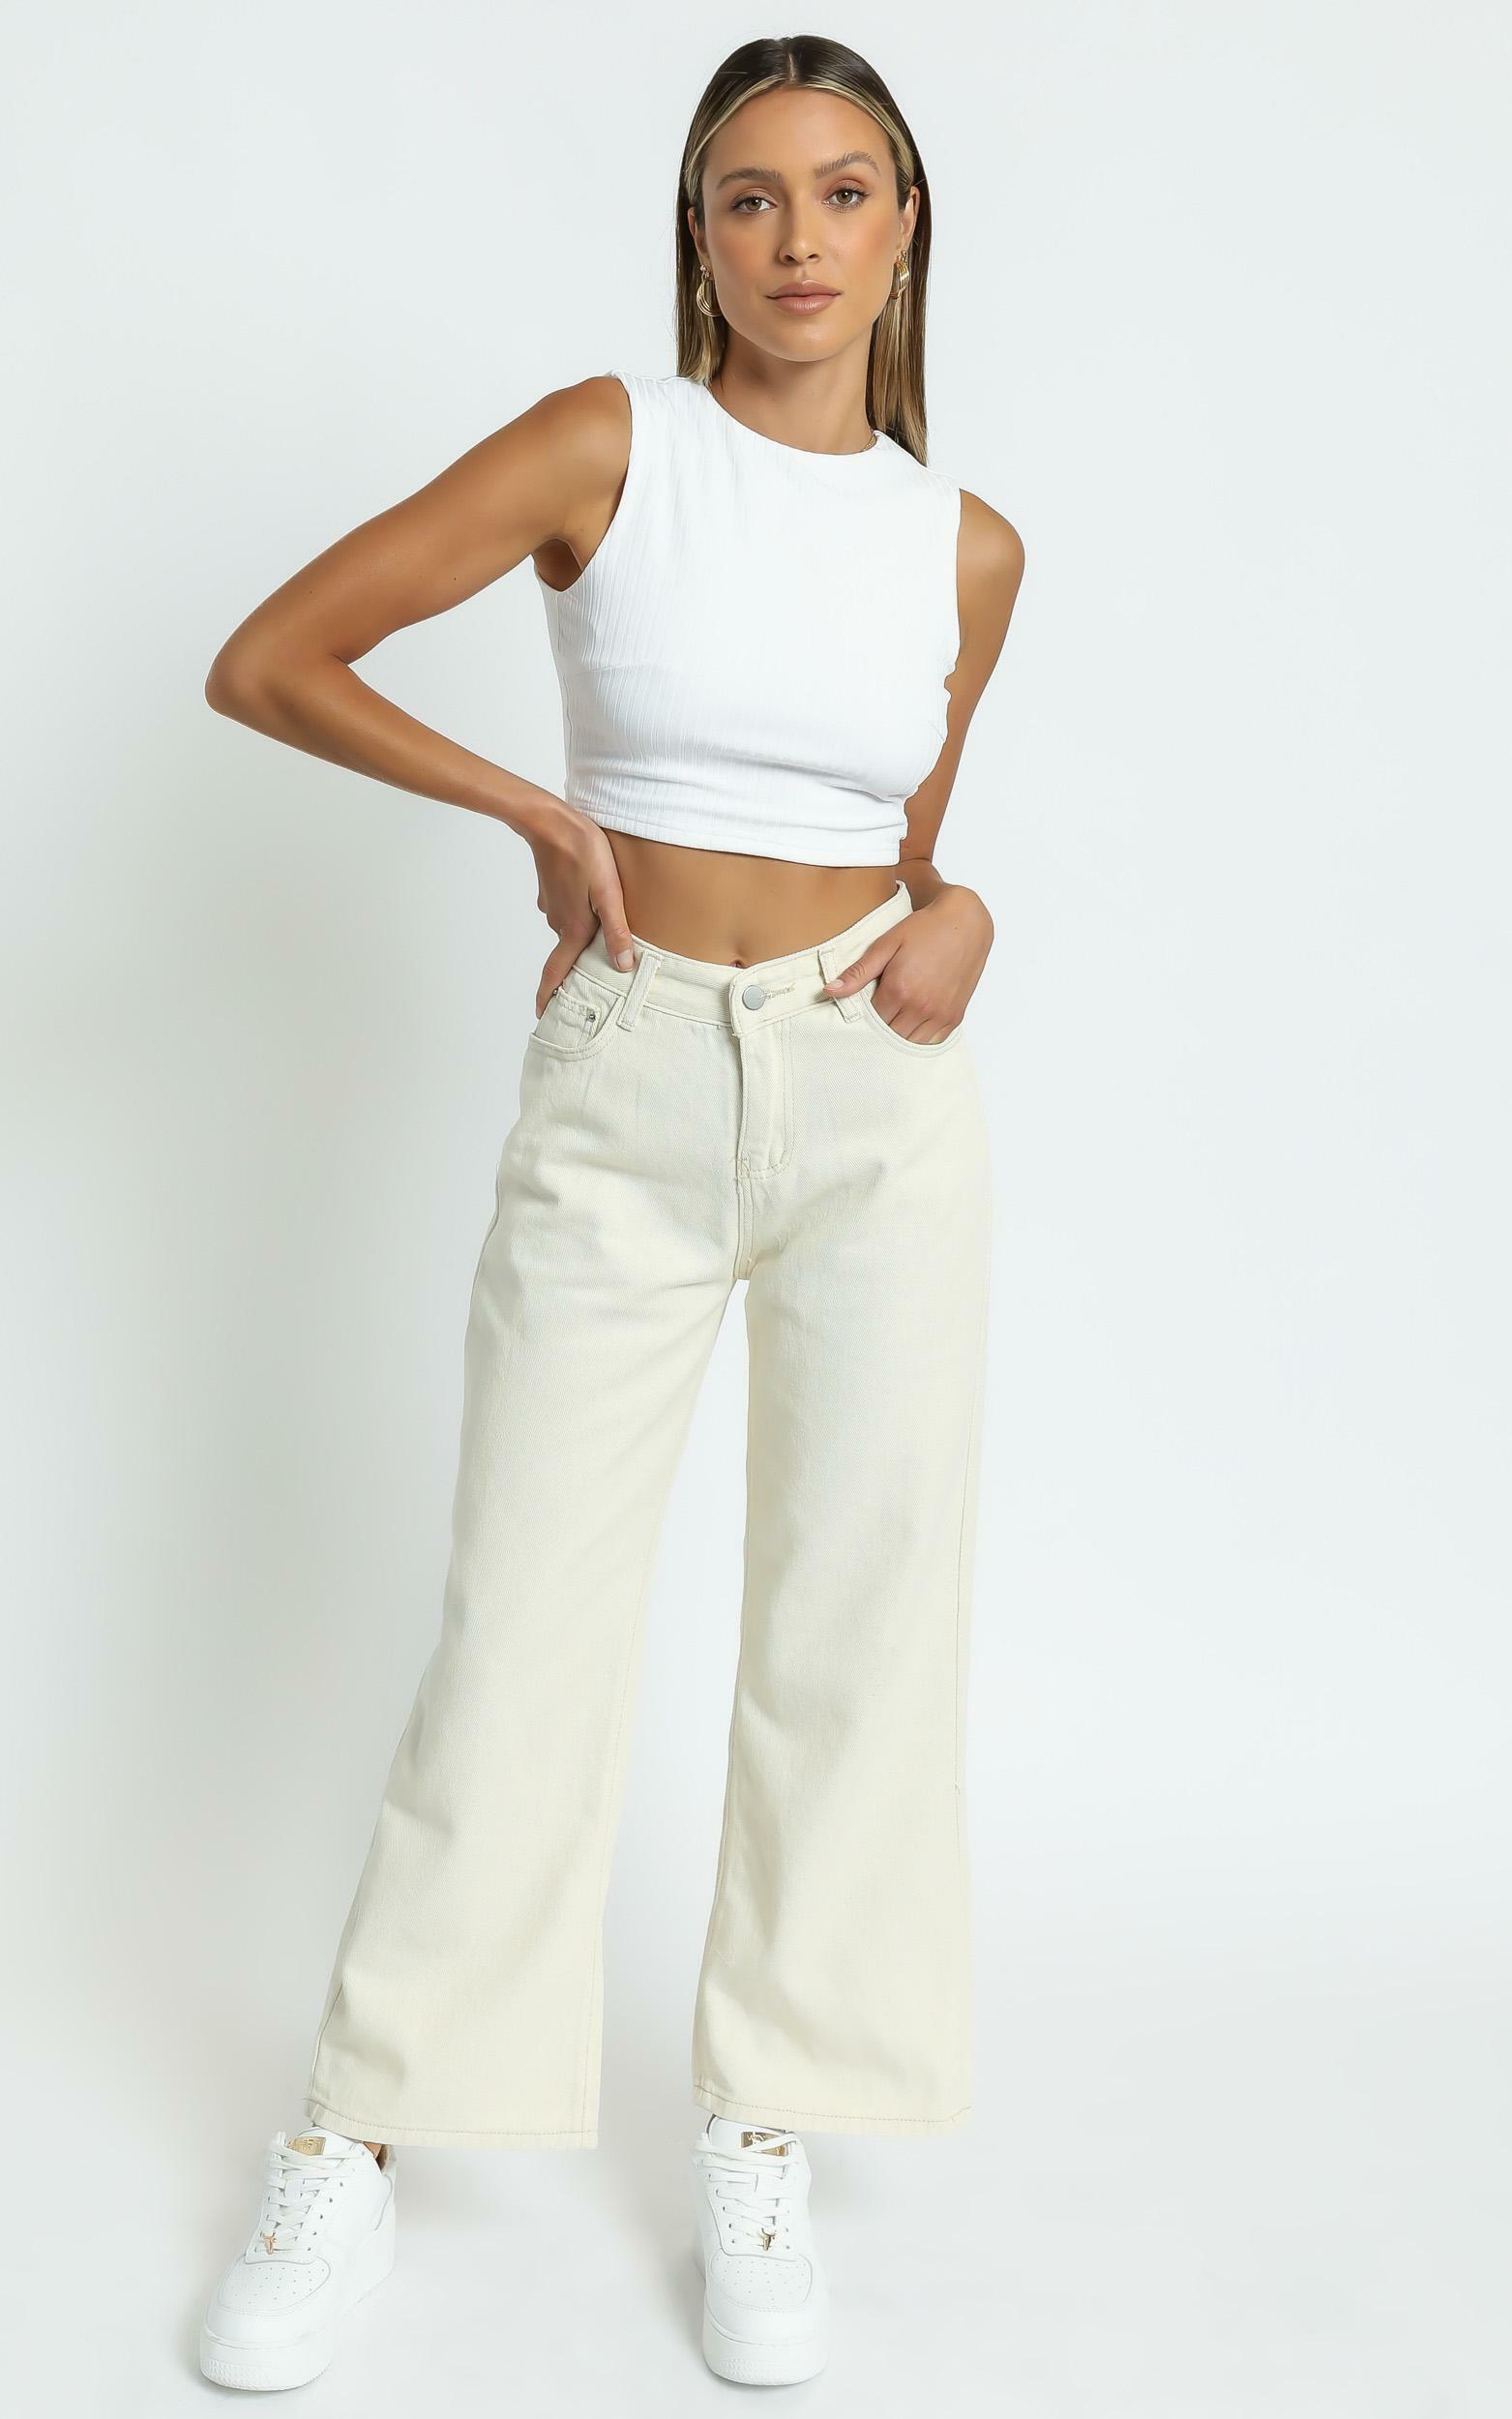 Nessie Top in White - 6 (XS), White, hi-res image number null